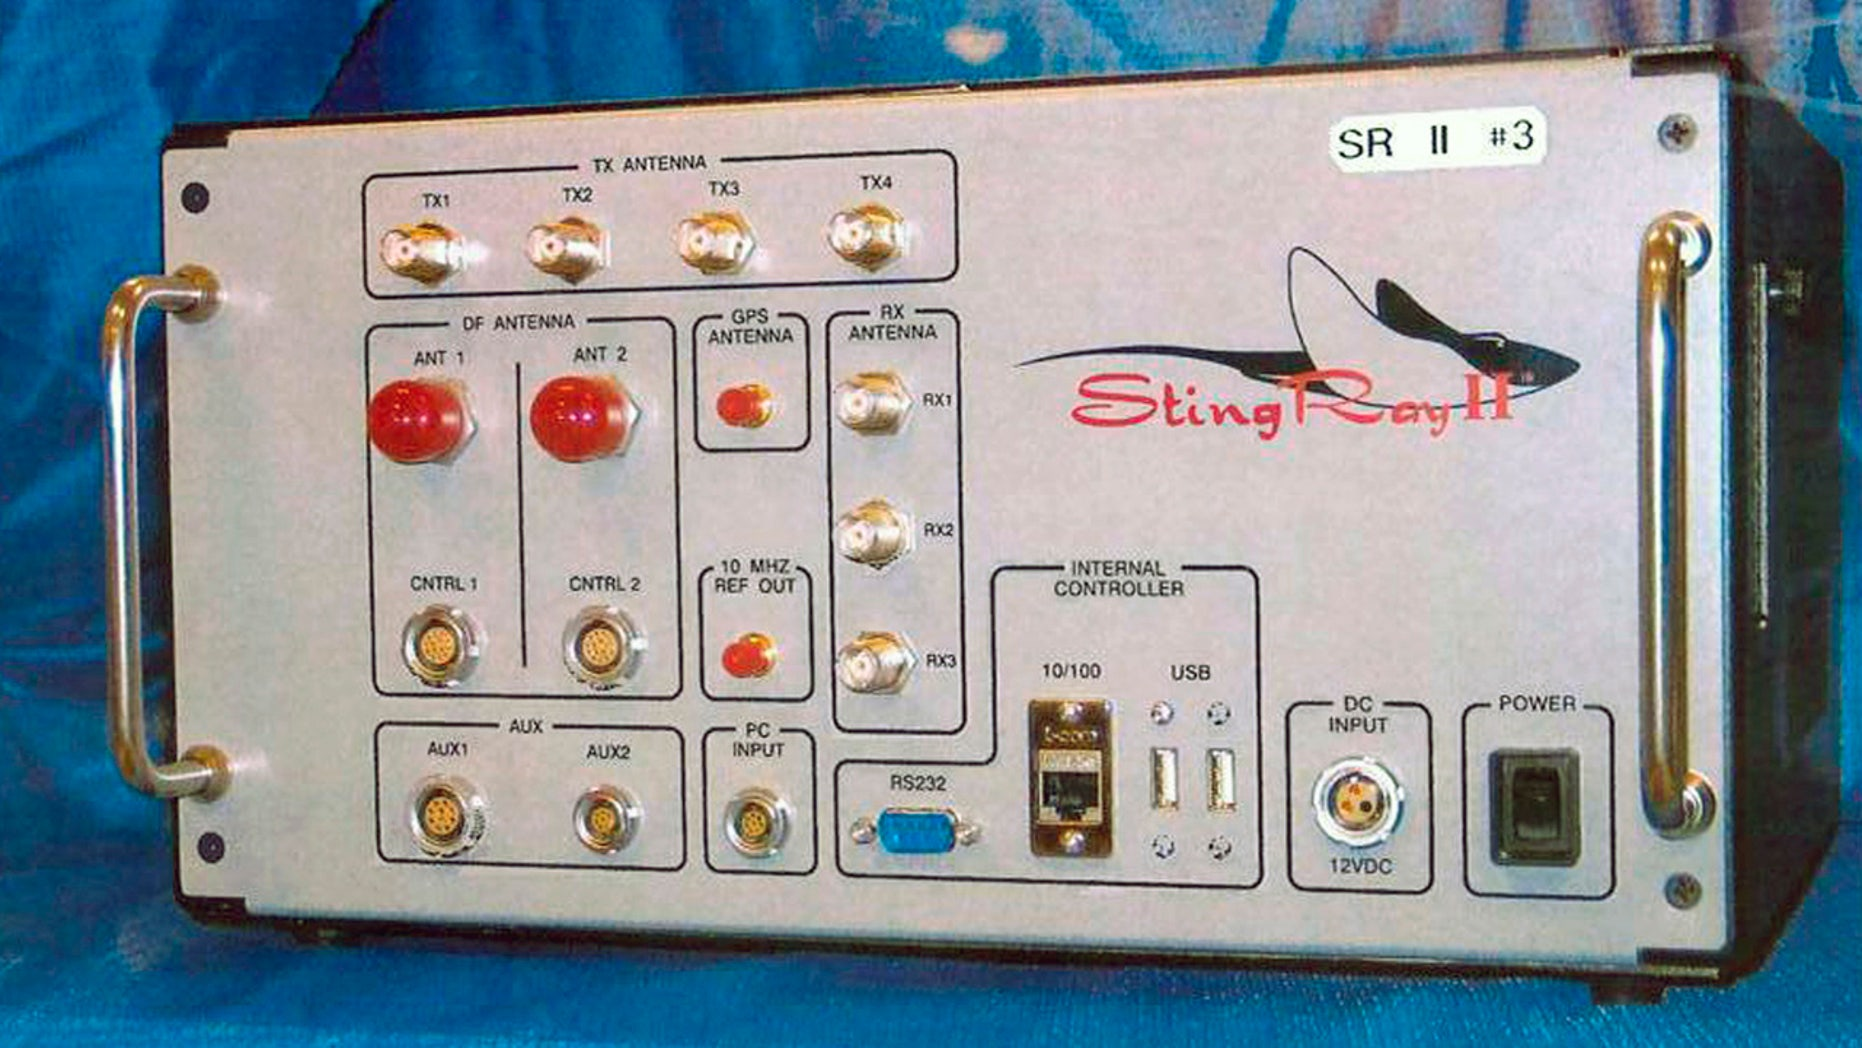 The Department of Homeland Security says it has identified suspected rogue cell tower simulators -- popularly known as Stingrays -- in Washington.